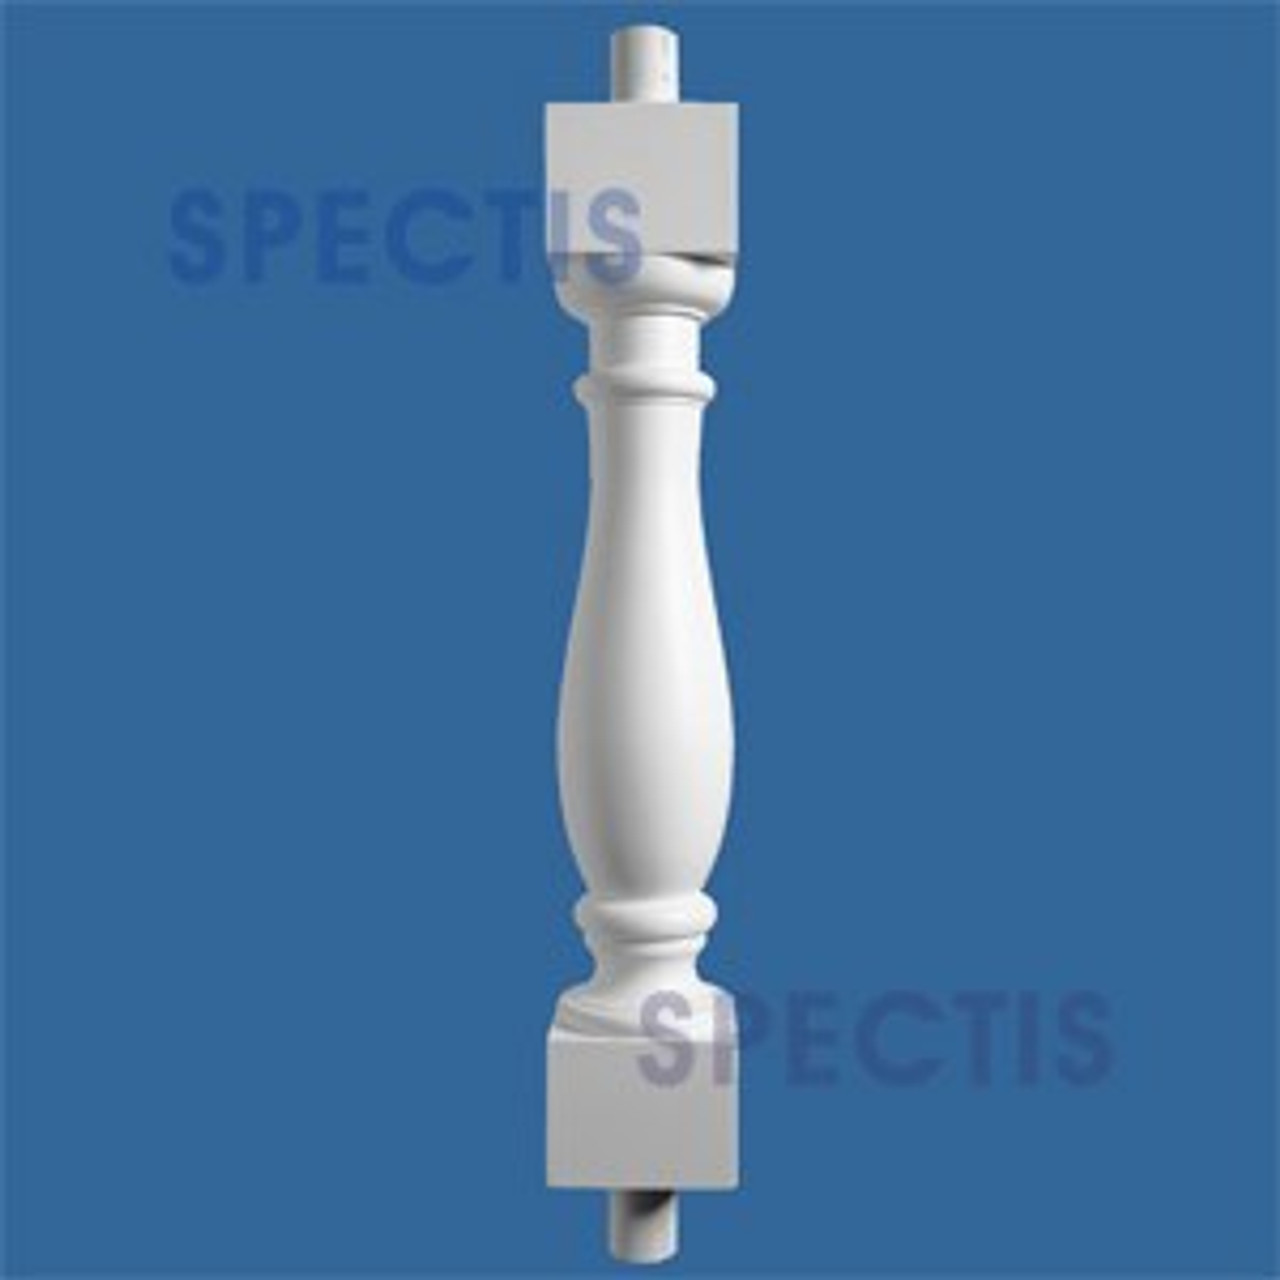 """BAL2000-25ext33 Urethane Baluster or Spindle 4 1/2""""W X 33""""H"""